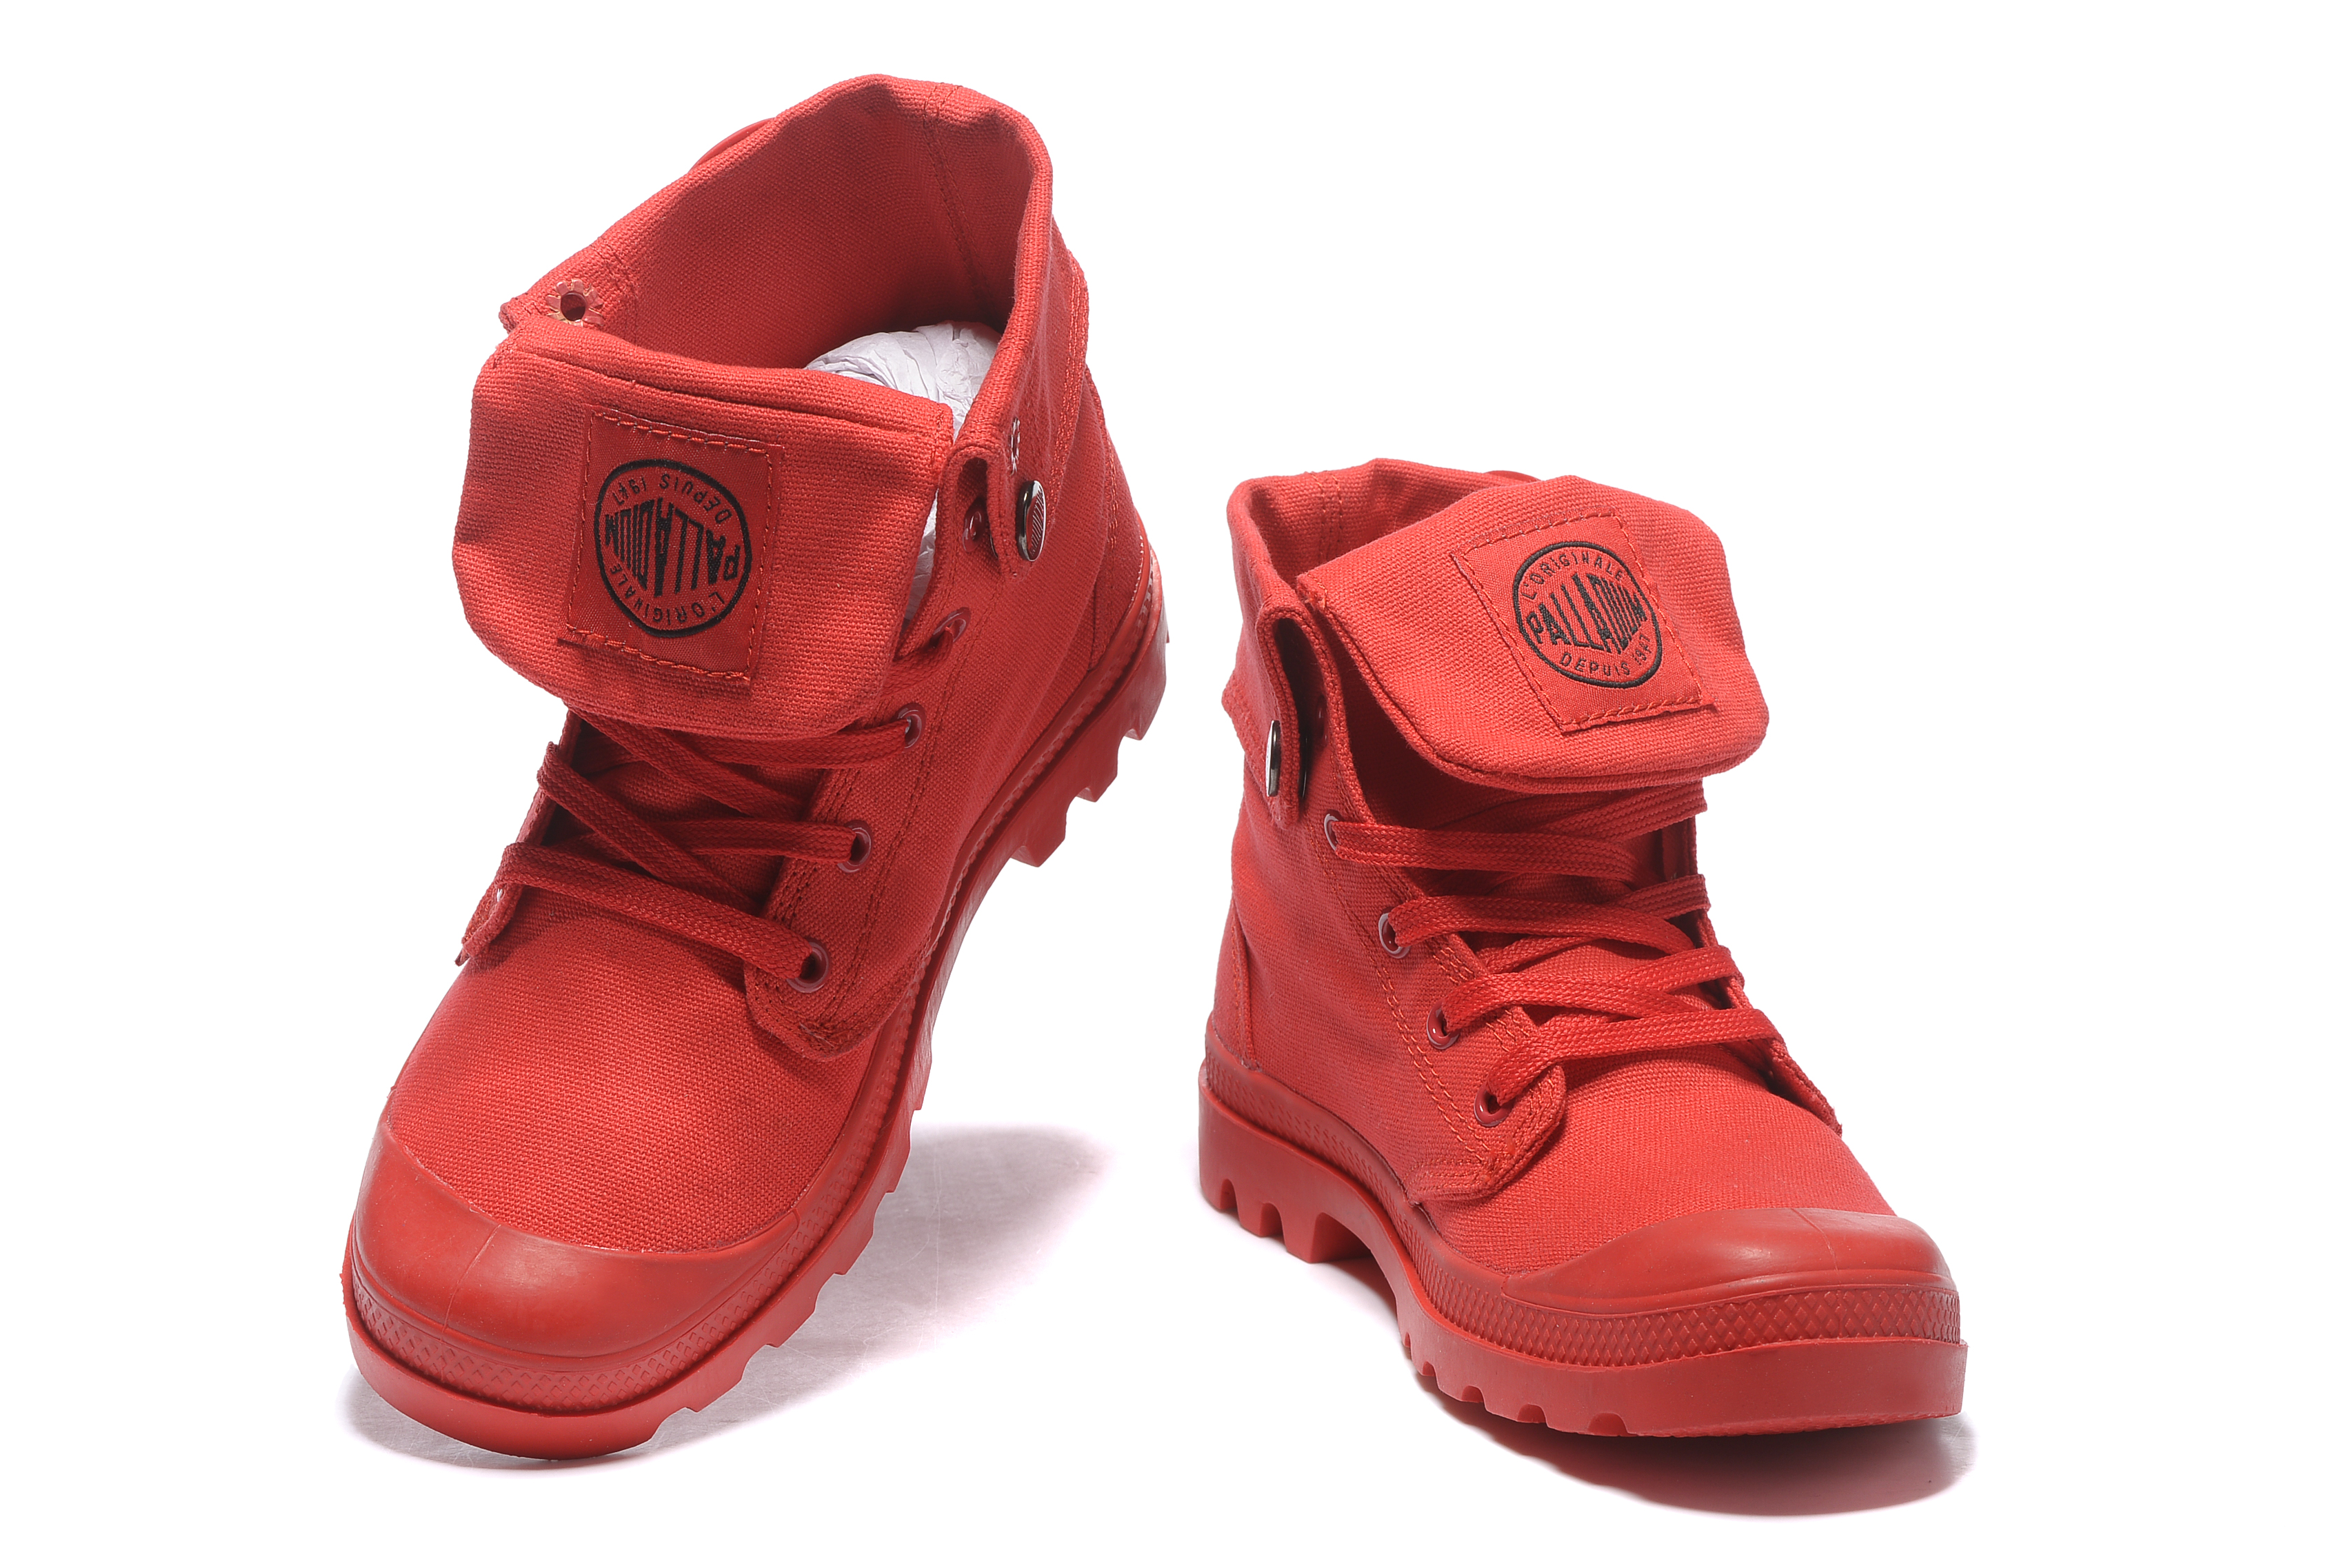 Supra Estaban Mens Leather Red Trainers New Shoes All ...  |All Red Shoes For Men